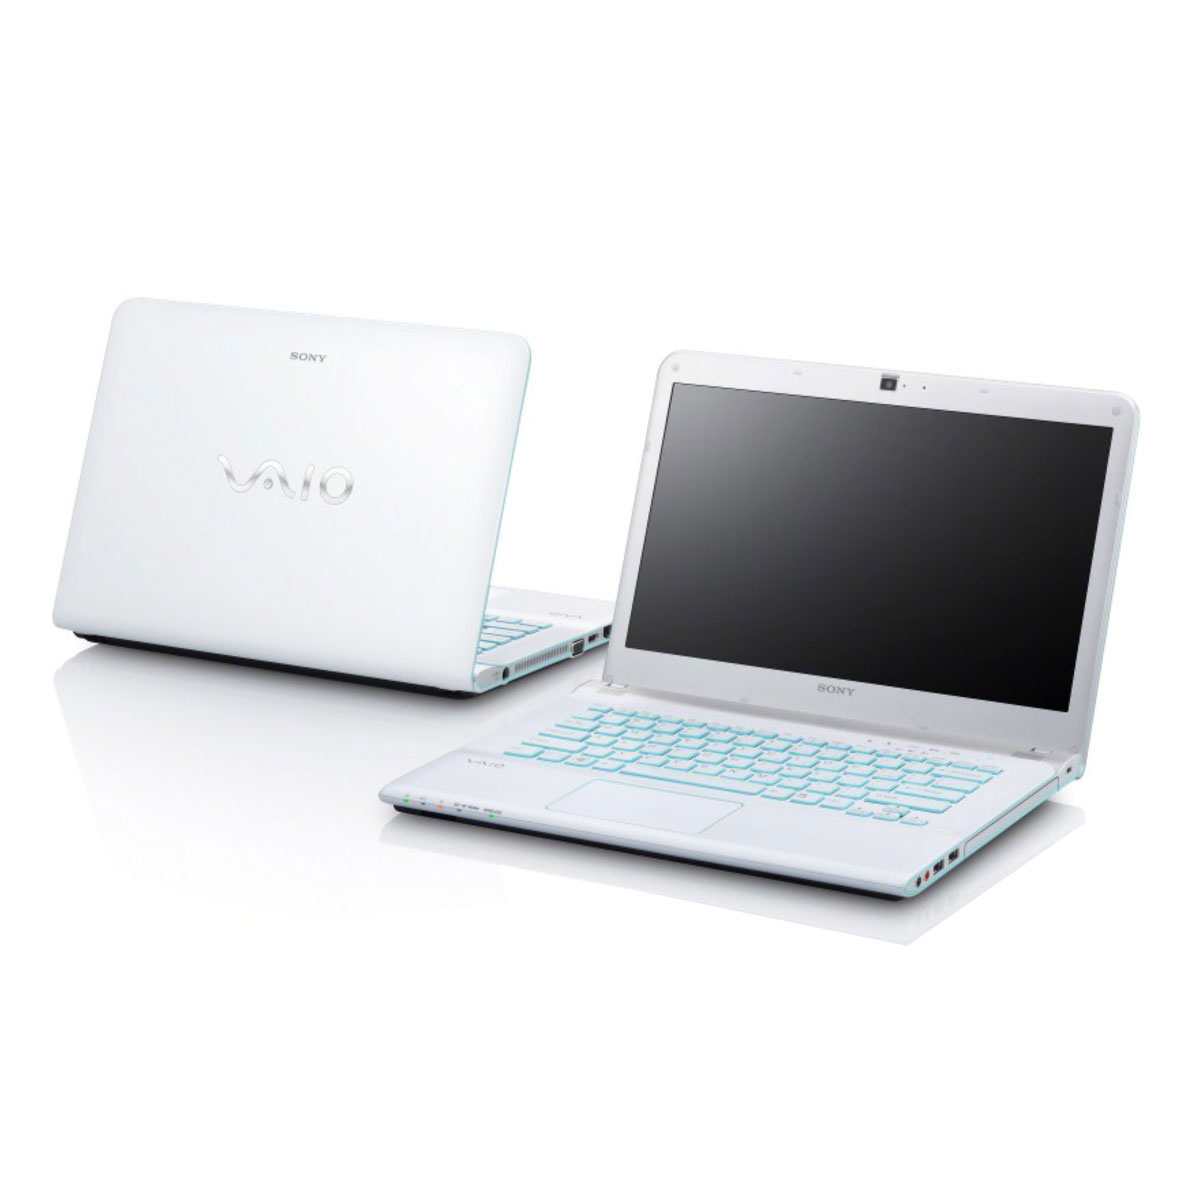 sony vaio e14a2v1ew pc portable sony sur. Black Bedroom Furniture Sets. Home Design Ideas